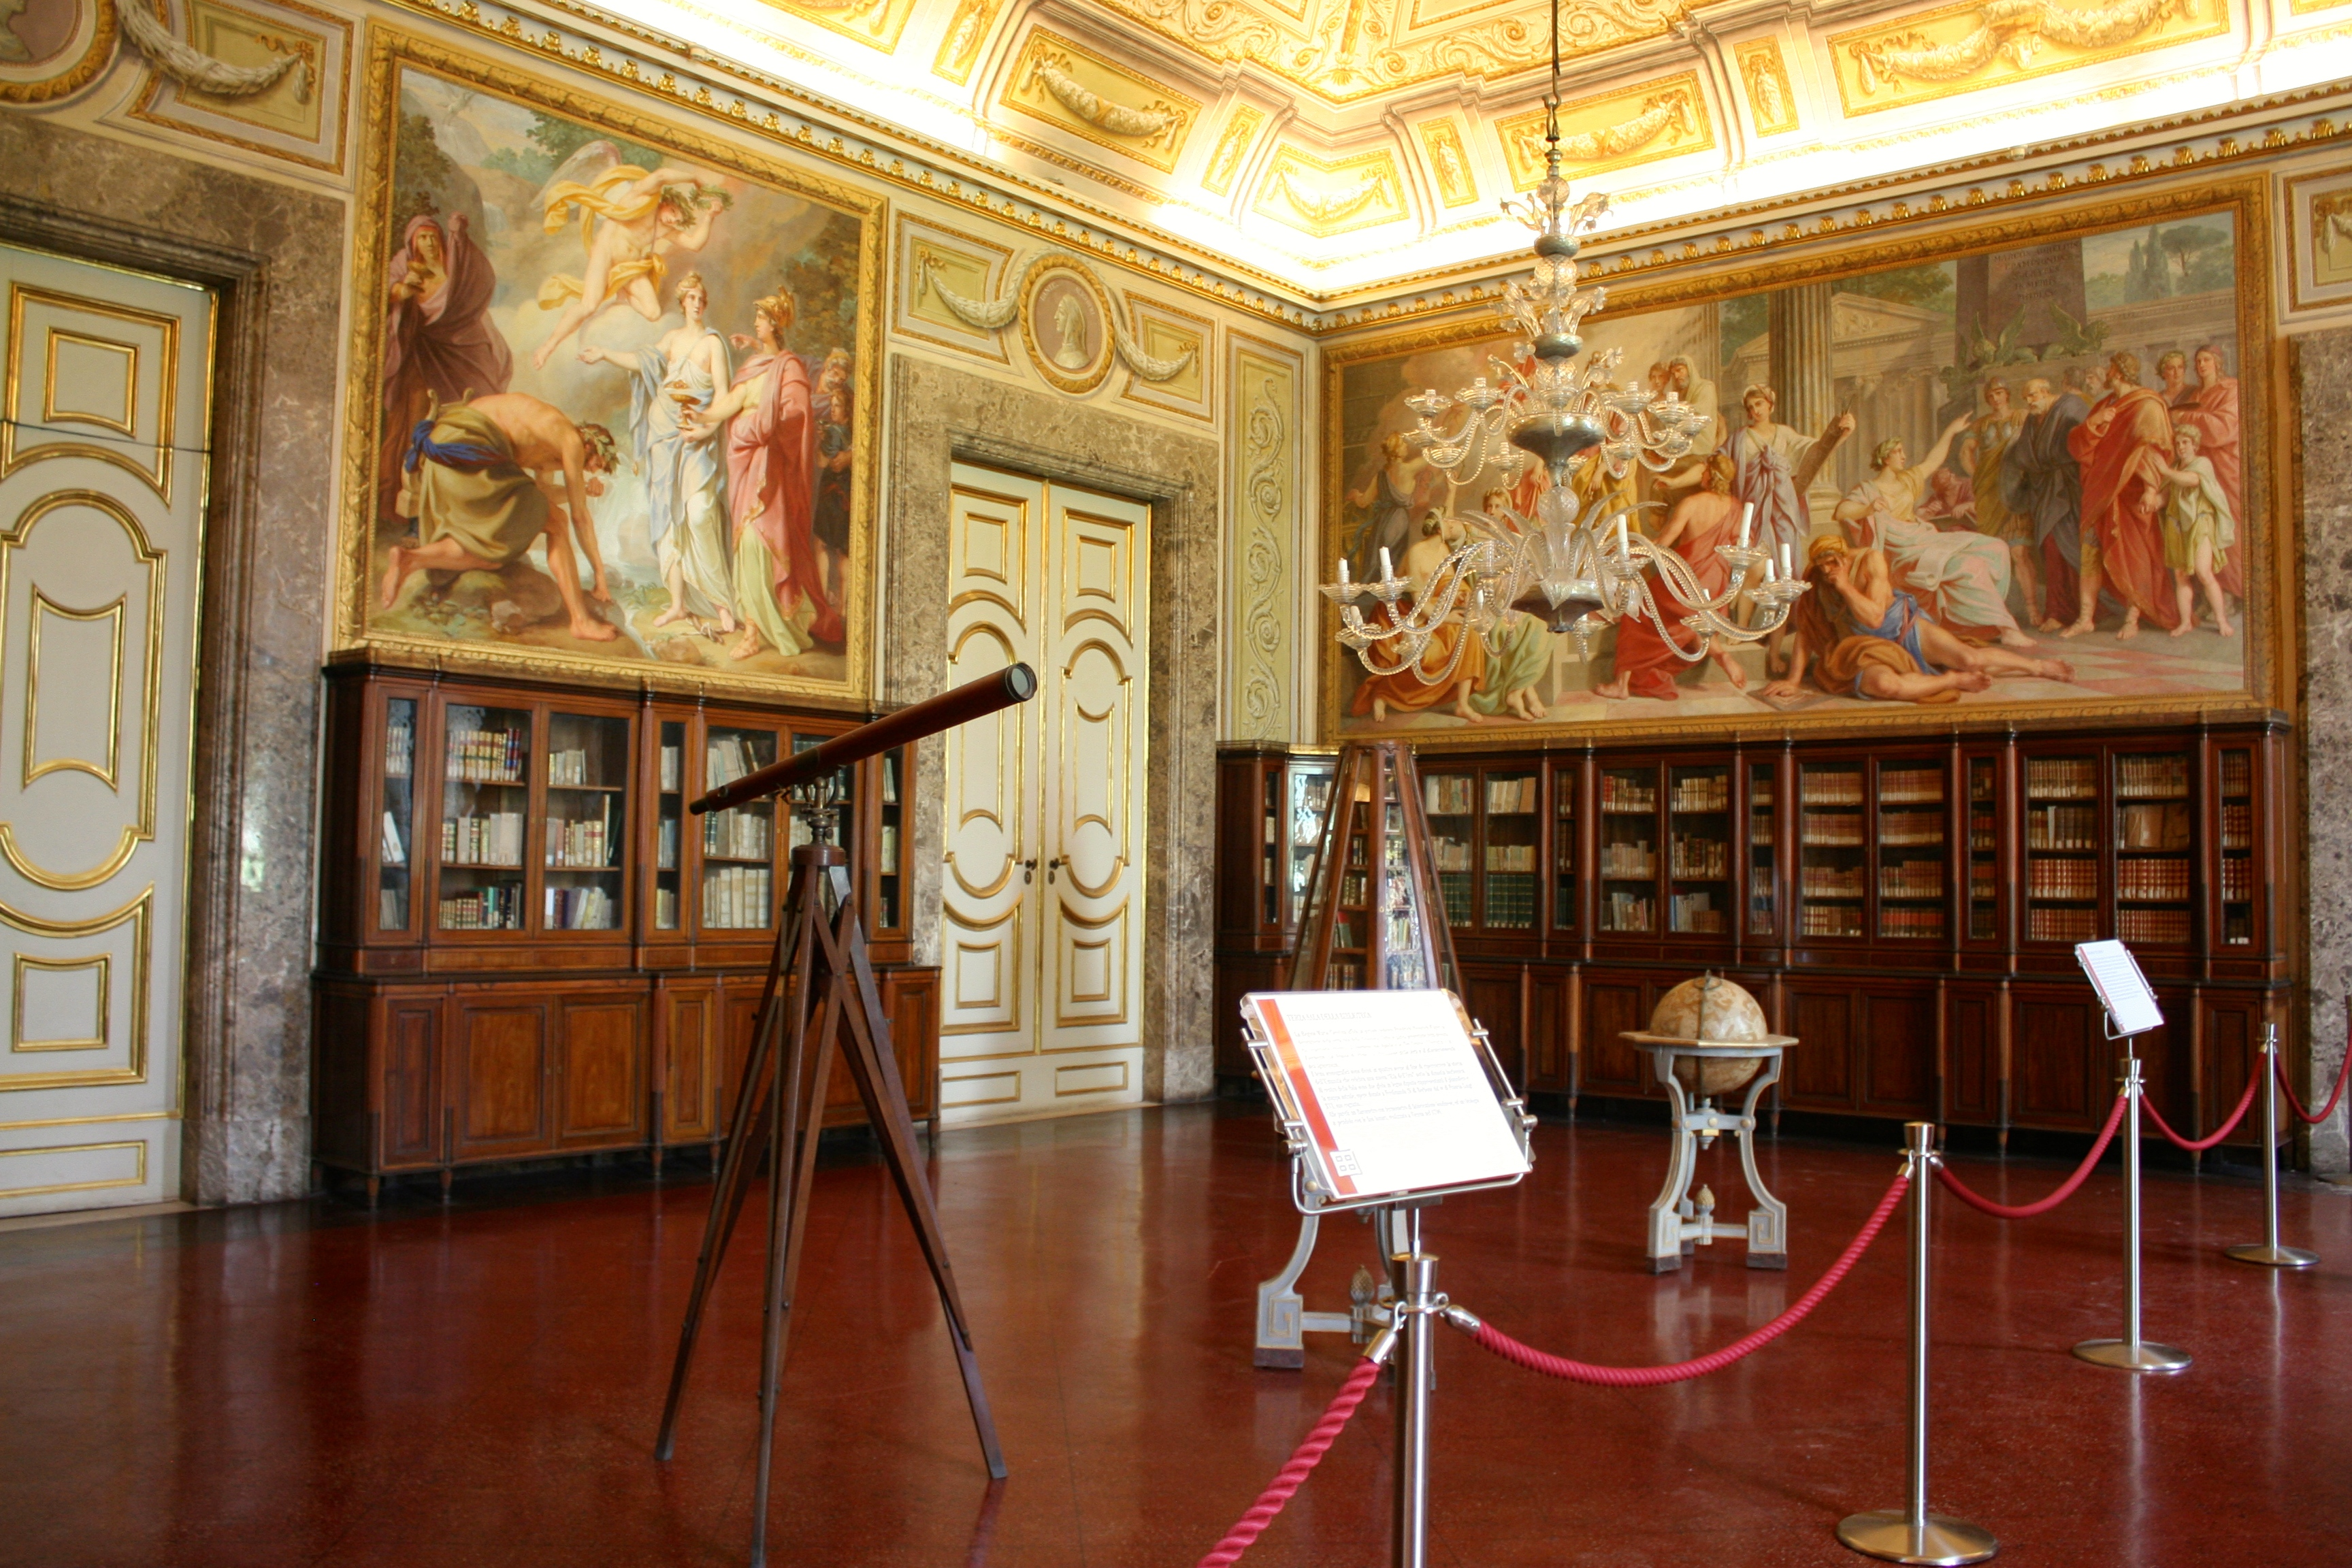 The third room of the library